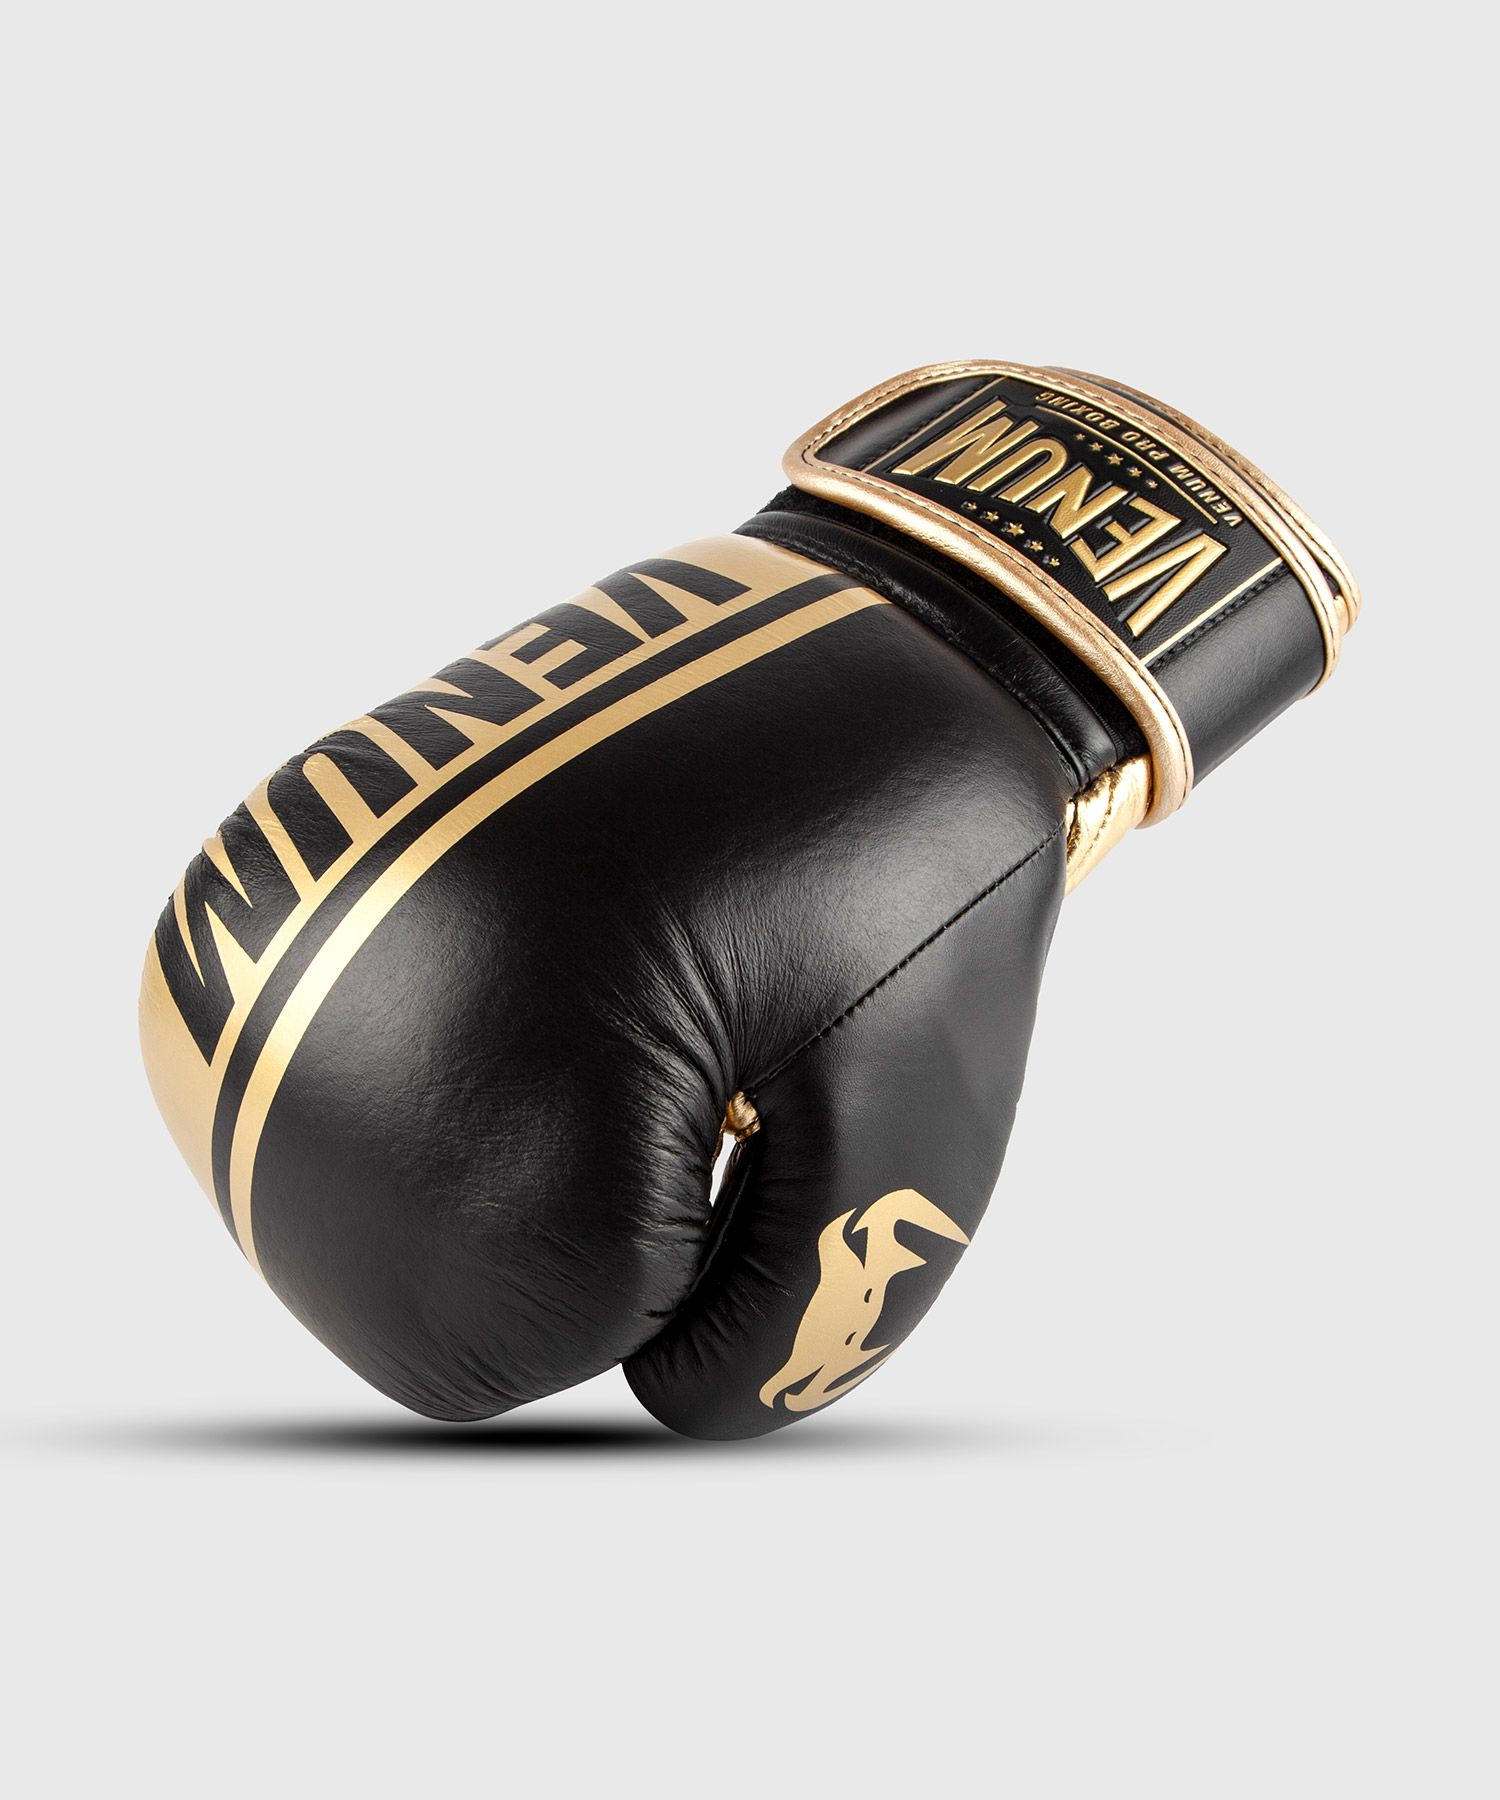 Venum Shield Pro Boxing Gloves Velcro - Black/Gold